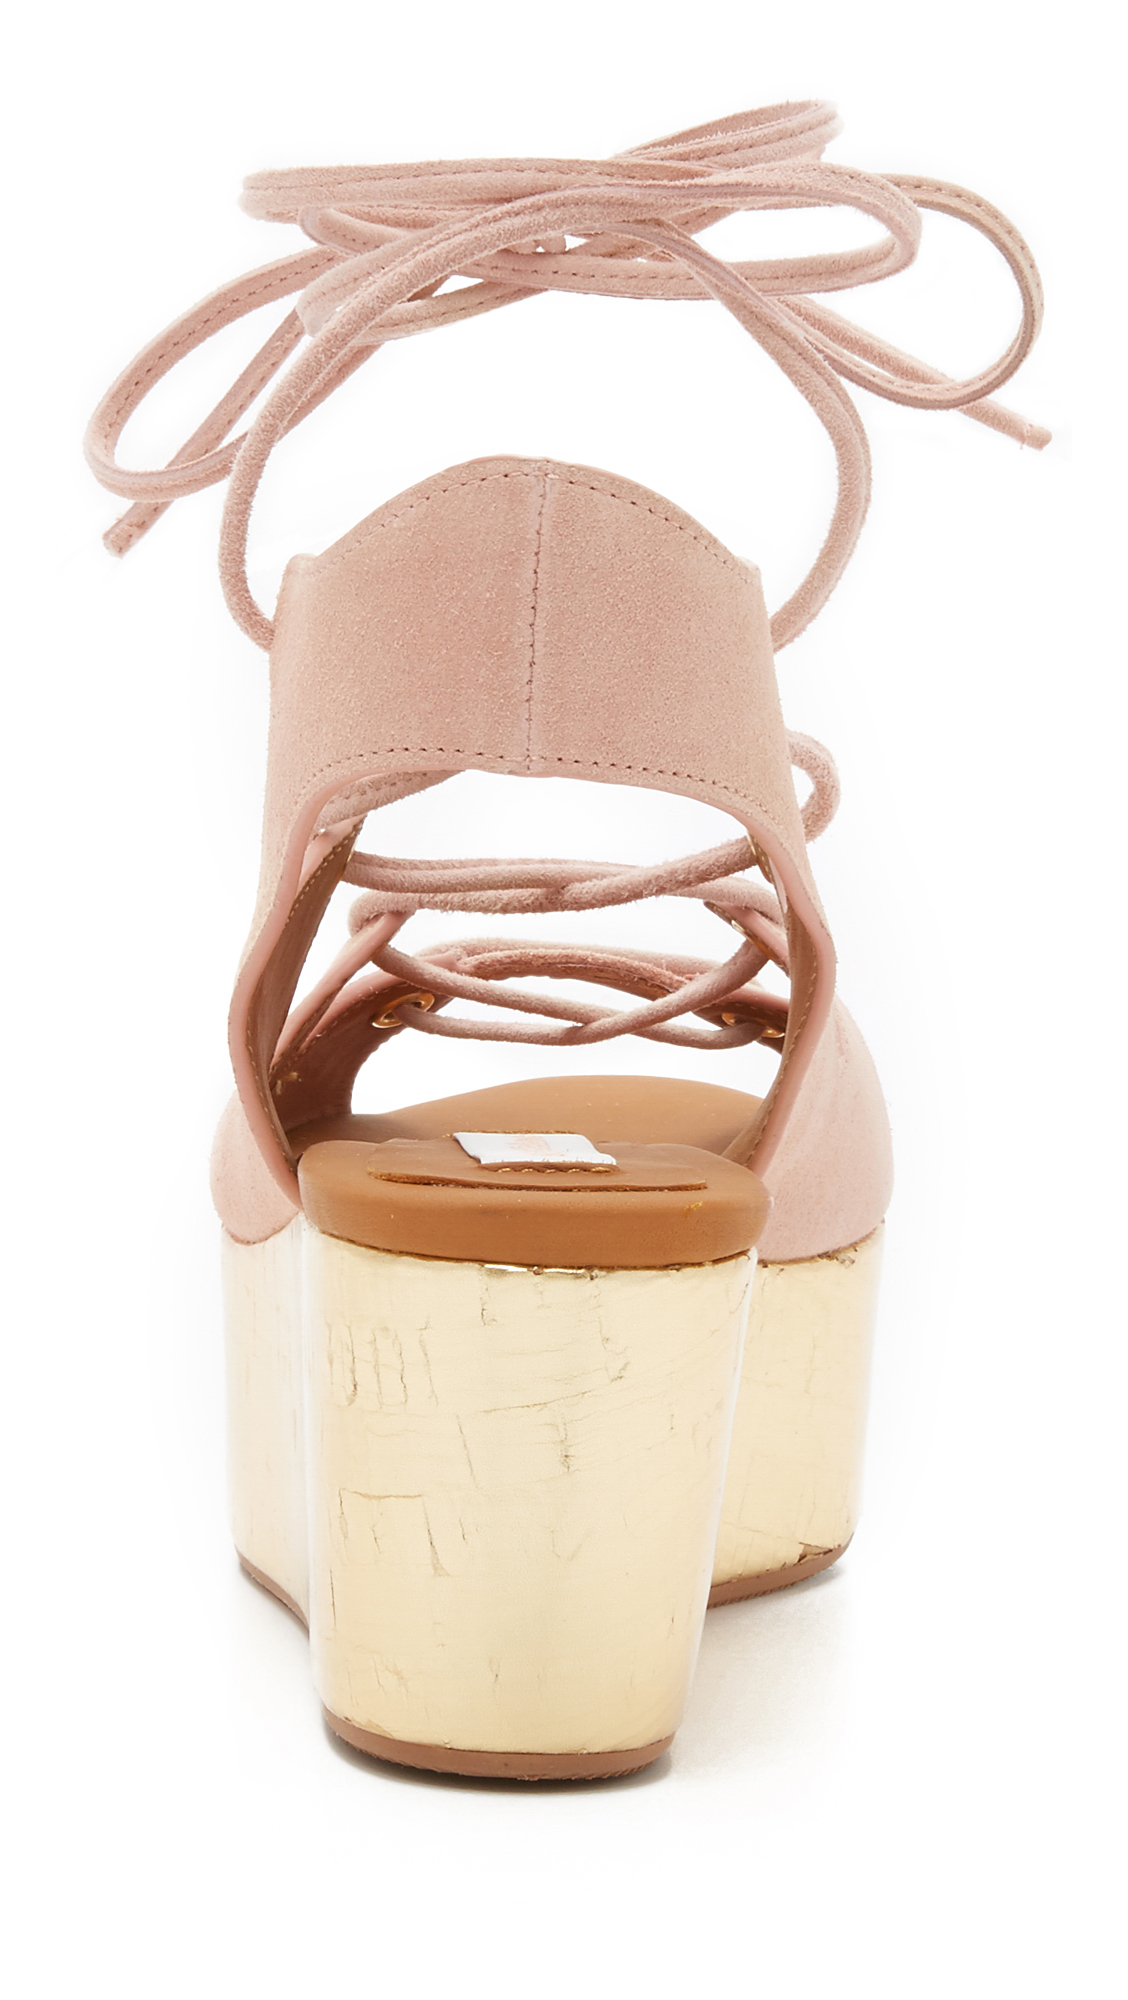 8a48d858fe8 Lyst - See By Chloé Liana Platform Lace Up Sandals in Natural